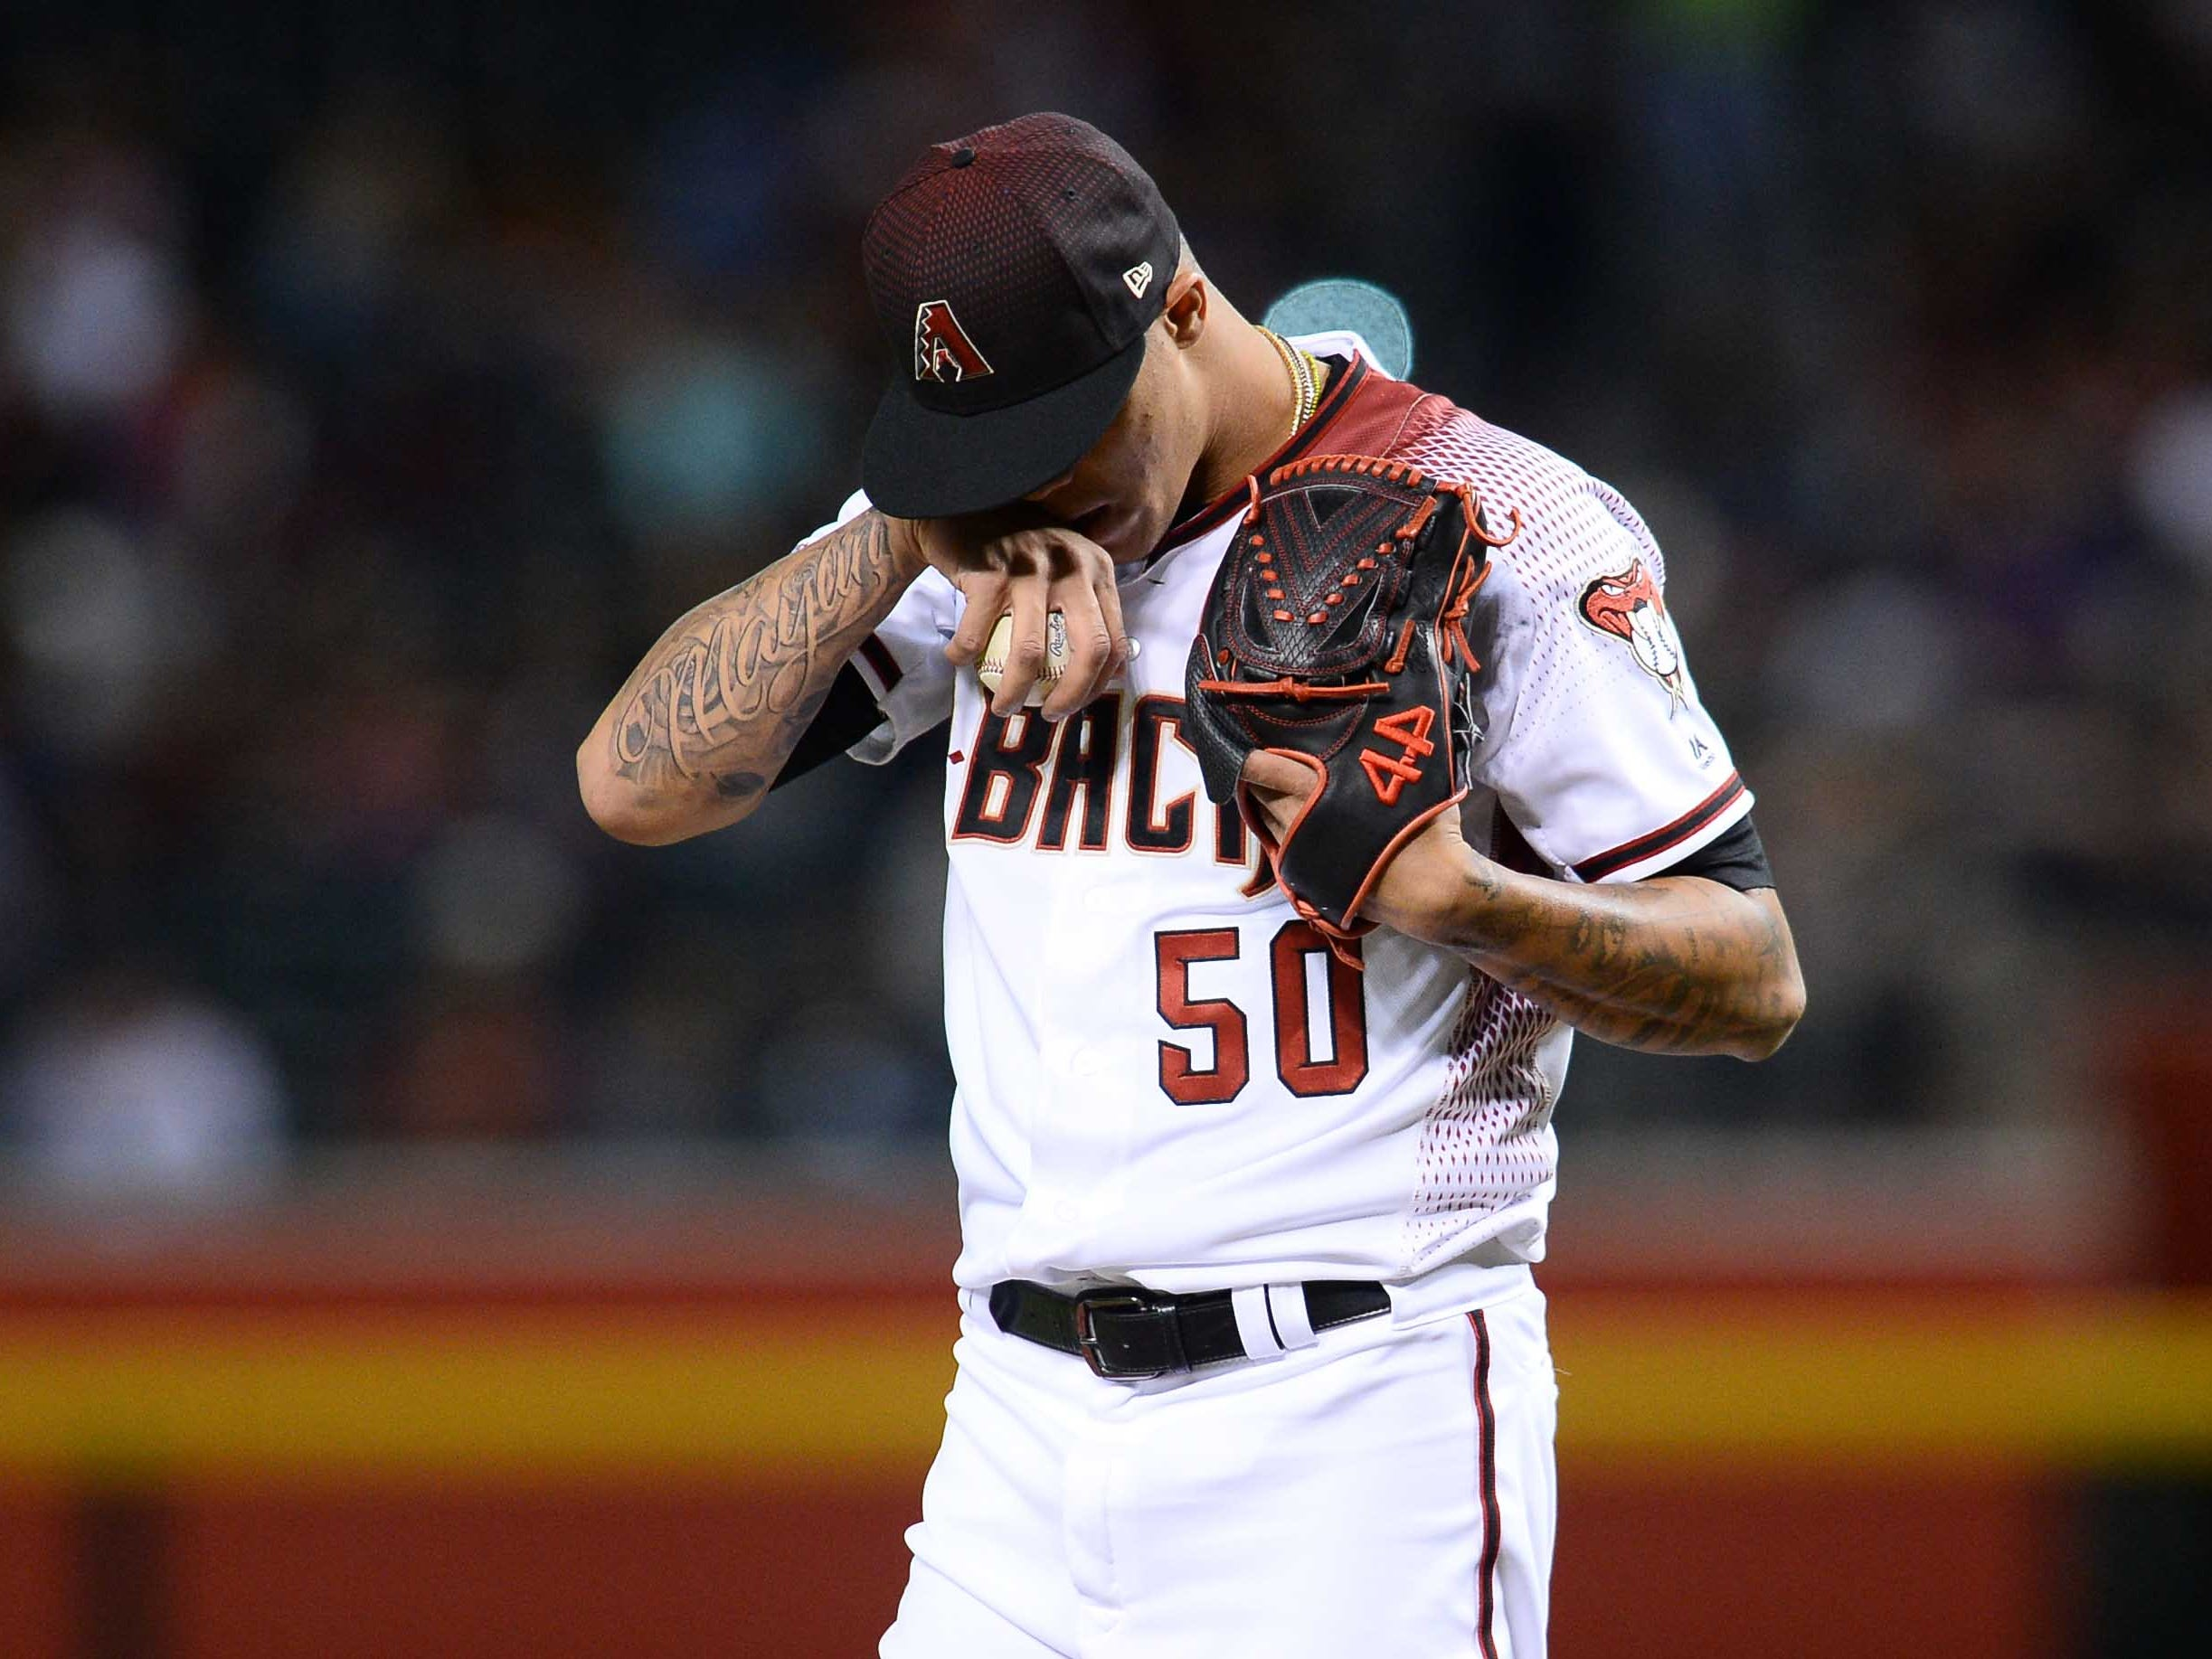 Apr 10, 2019; Phoenix, AZ, USA; Arizona Diamondbacks relief pitcher Yoan Lopez (50) reacts against the Texas Rangers during the sixth inning at Chase Field. Mandatory Credit: Joe Camporeale-USA TODAY Sports